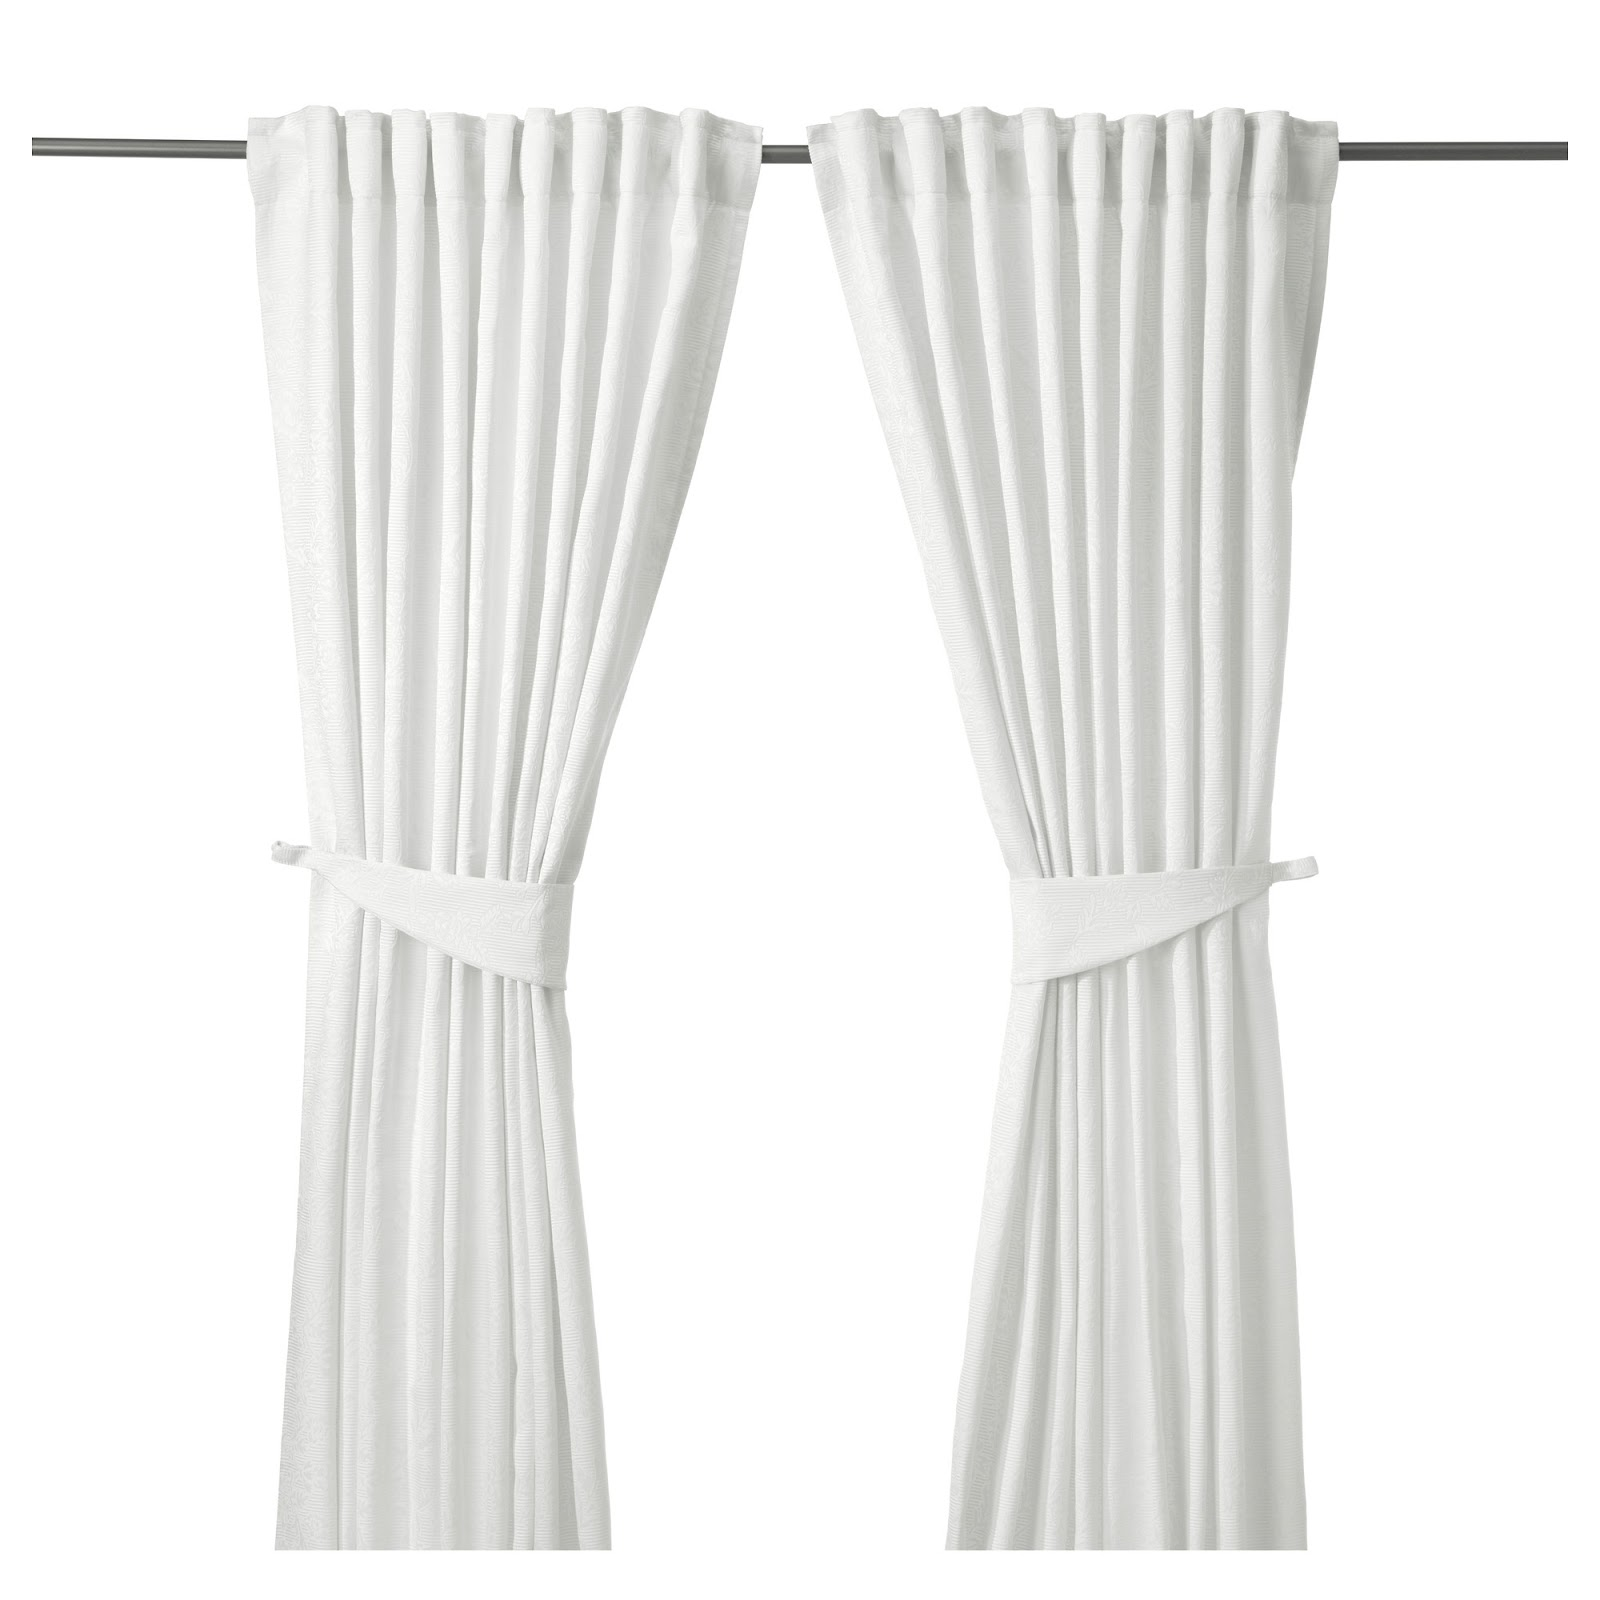 Outdoor Shower Curtains Sunbrella Vinyl Waterproof Patio